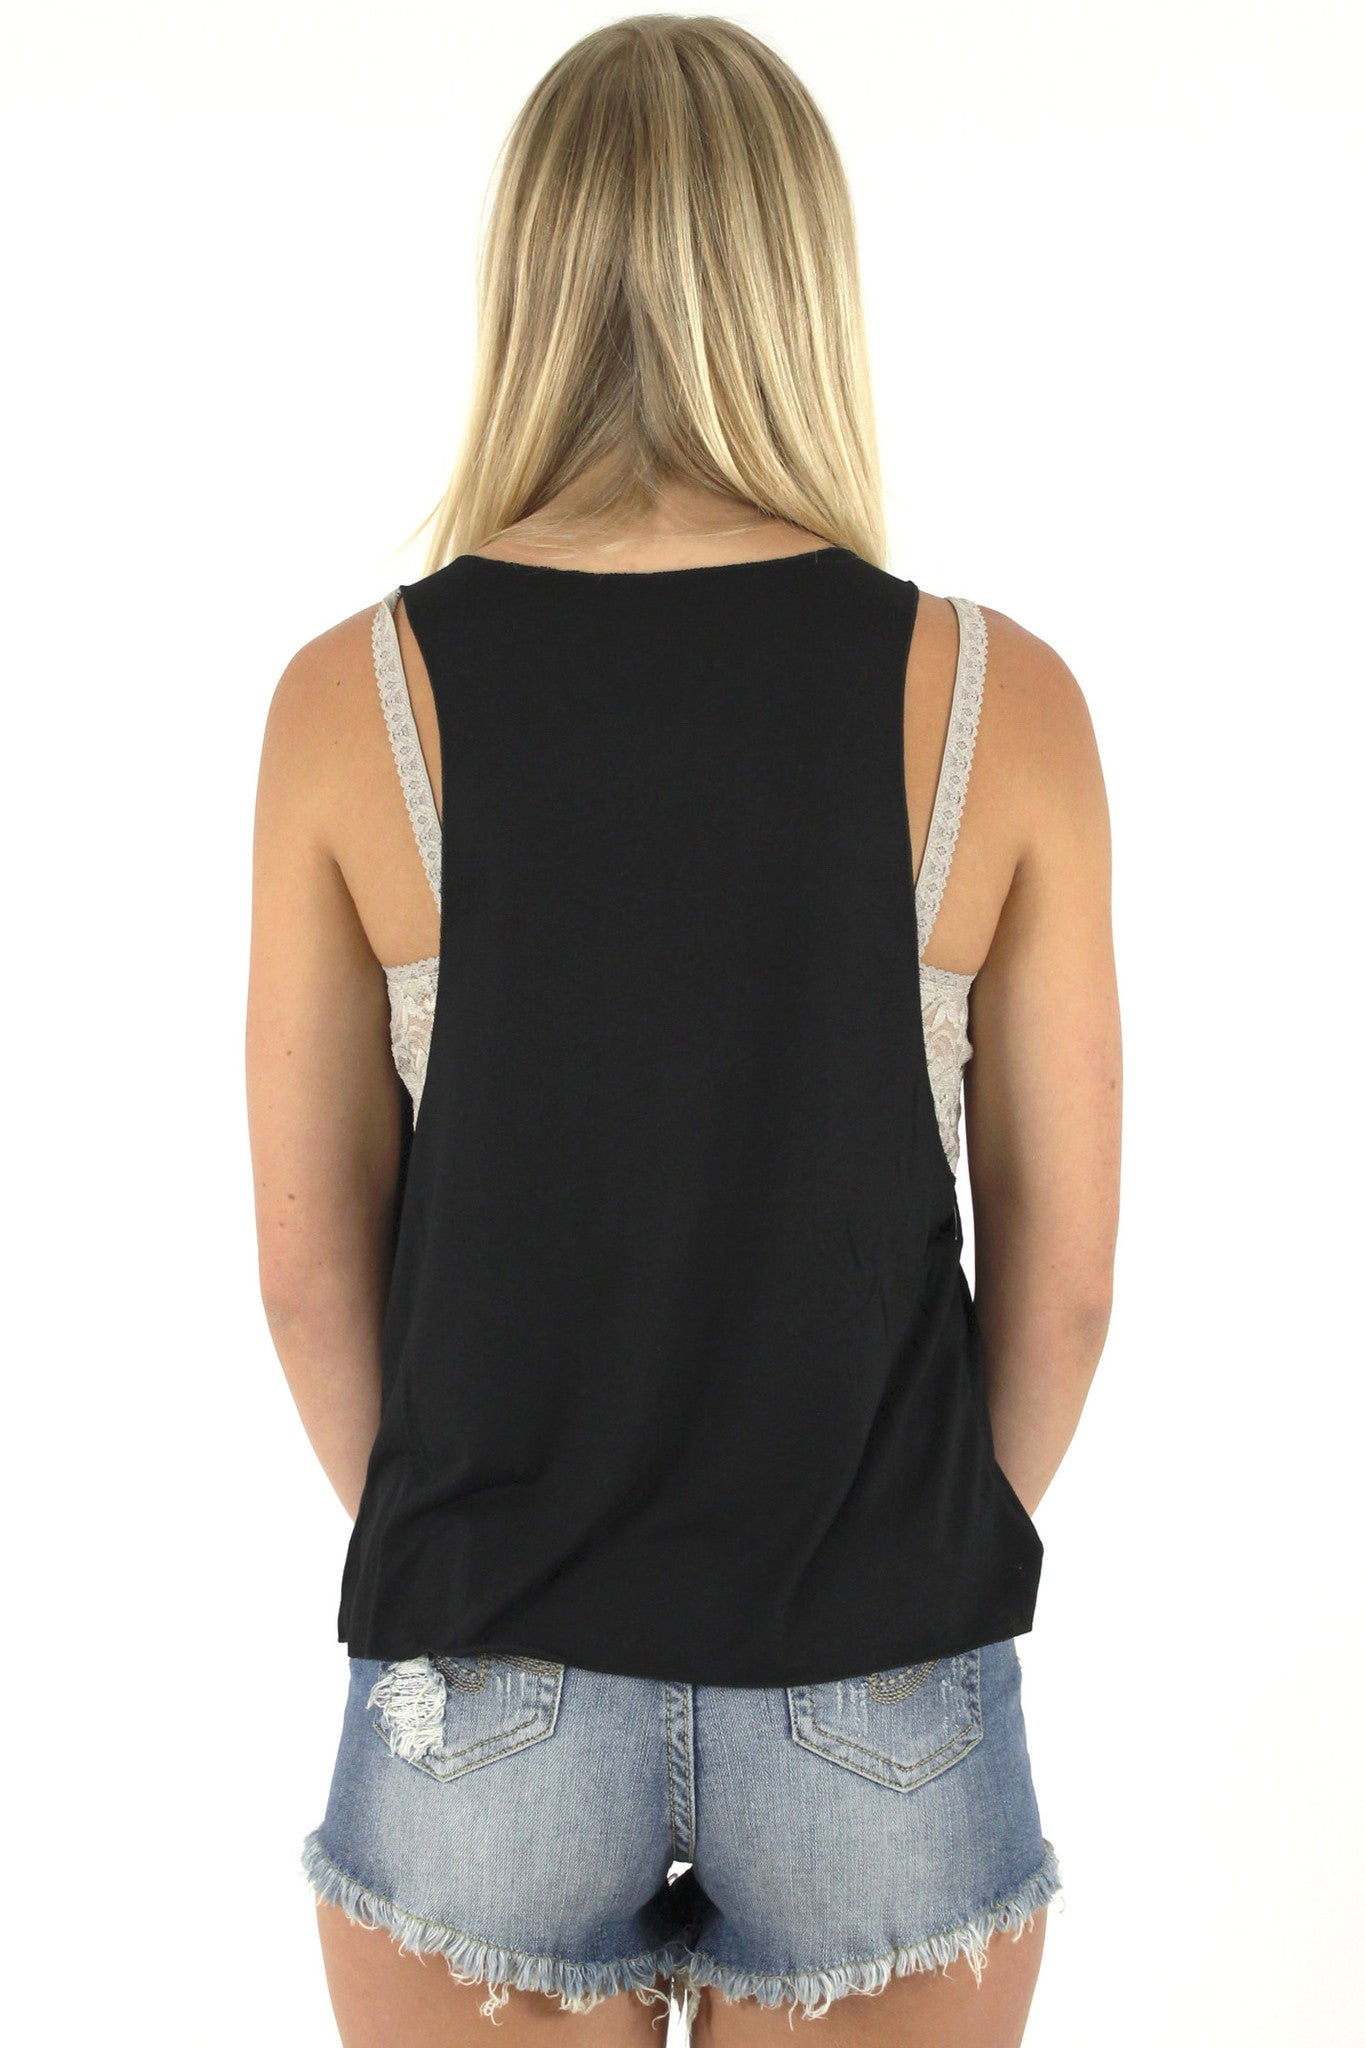 Gypsy Soul Loose Tank Top / Black